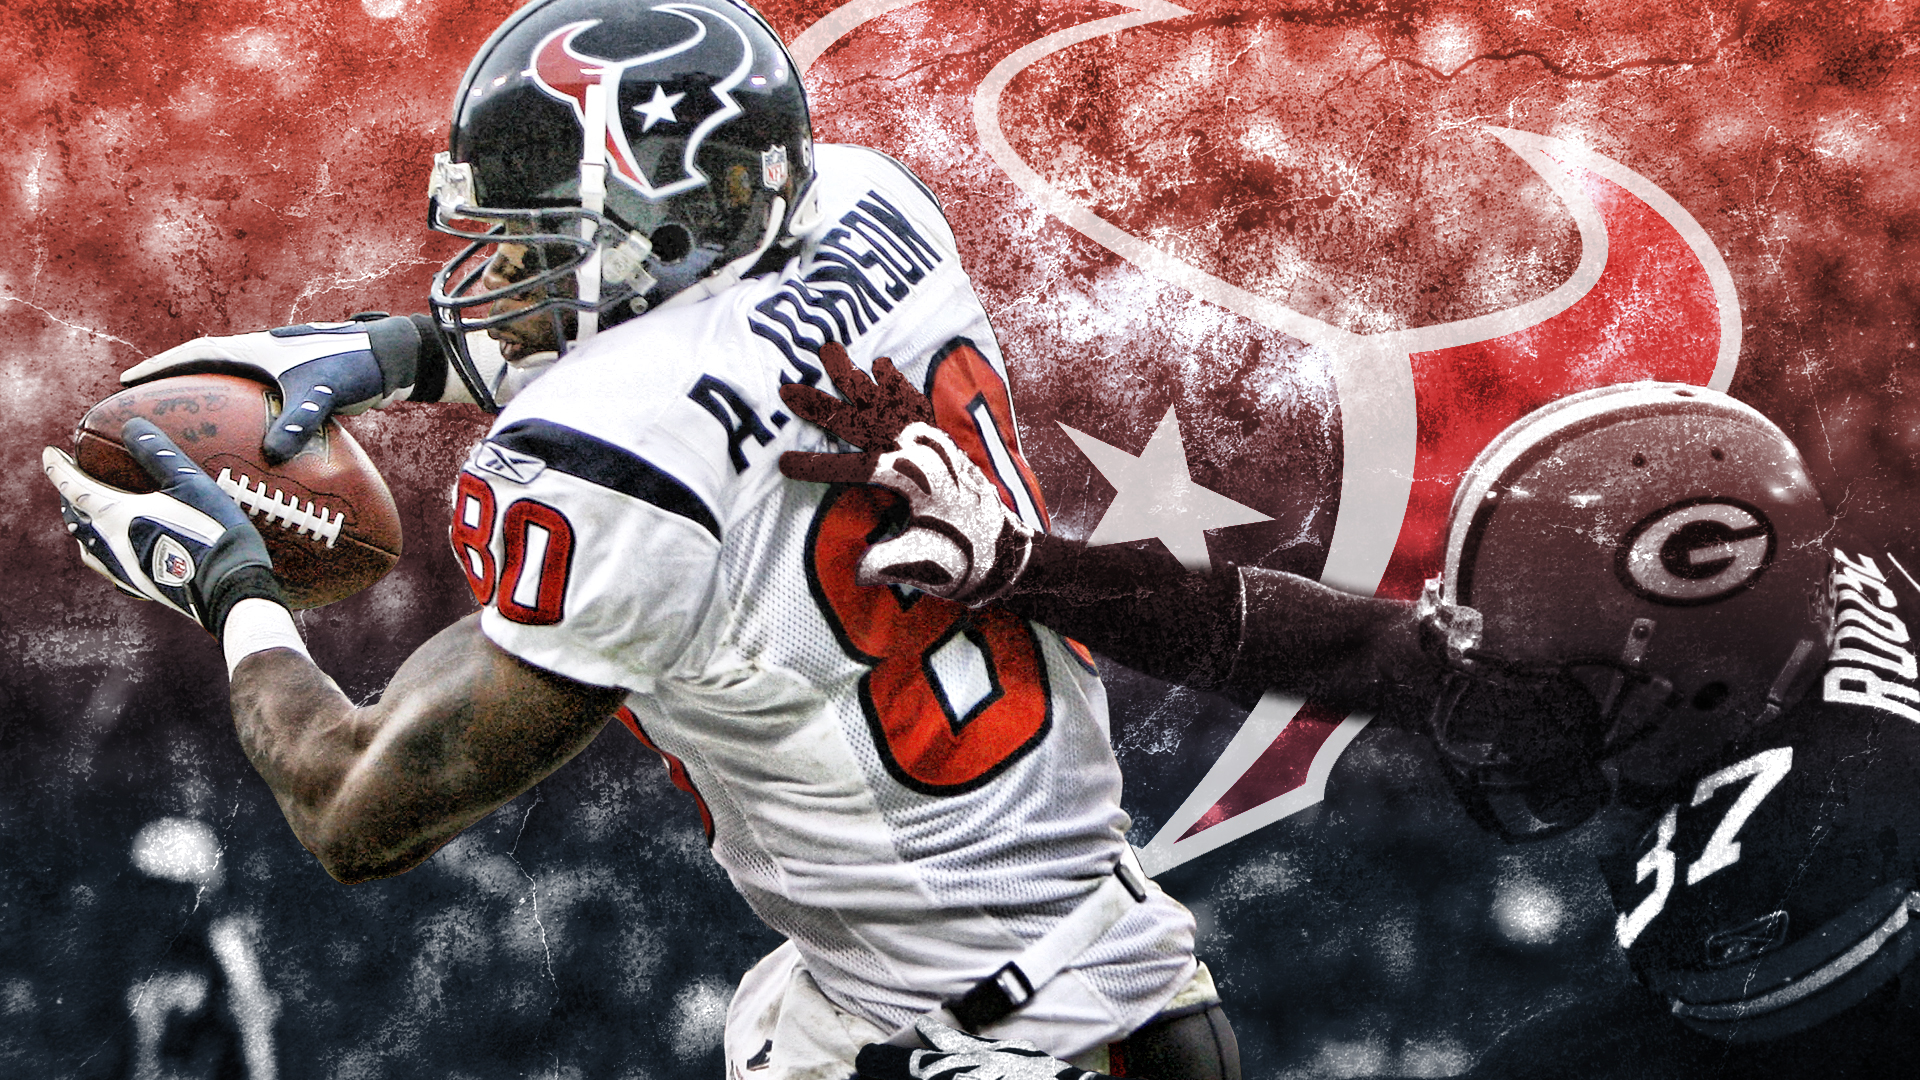 NFL Houston Texans Andre Johnson 1920x1080 HD NFL Houston Texans 1920x1080